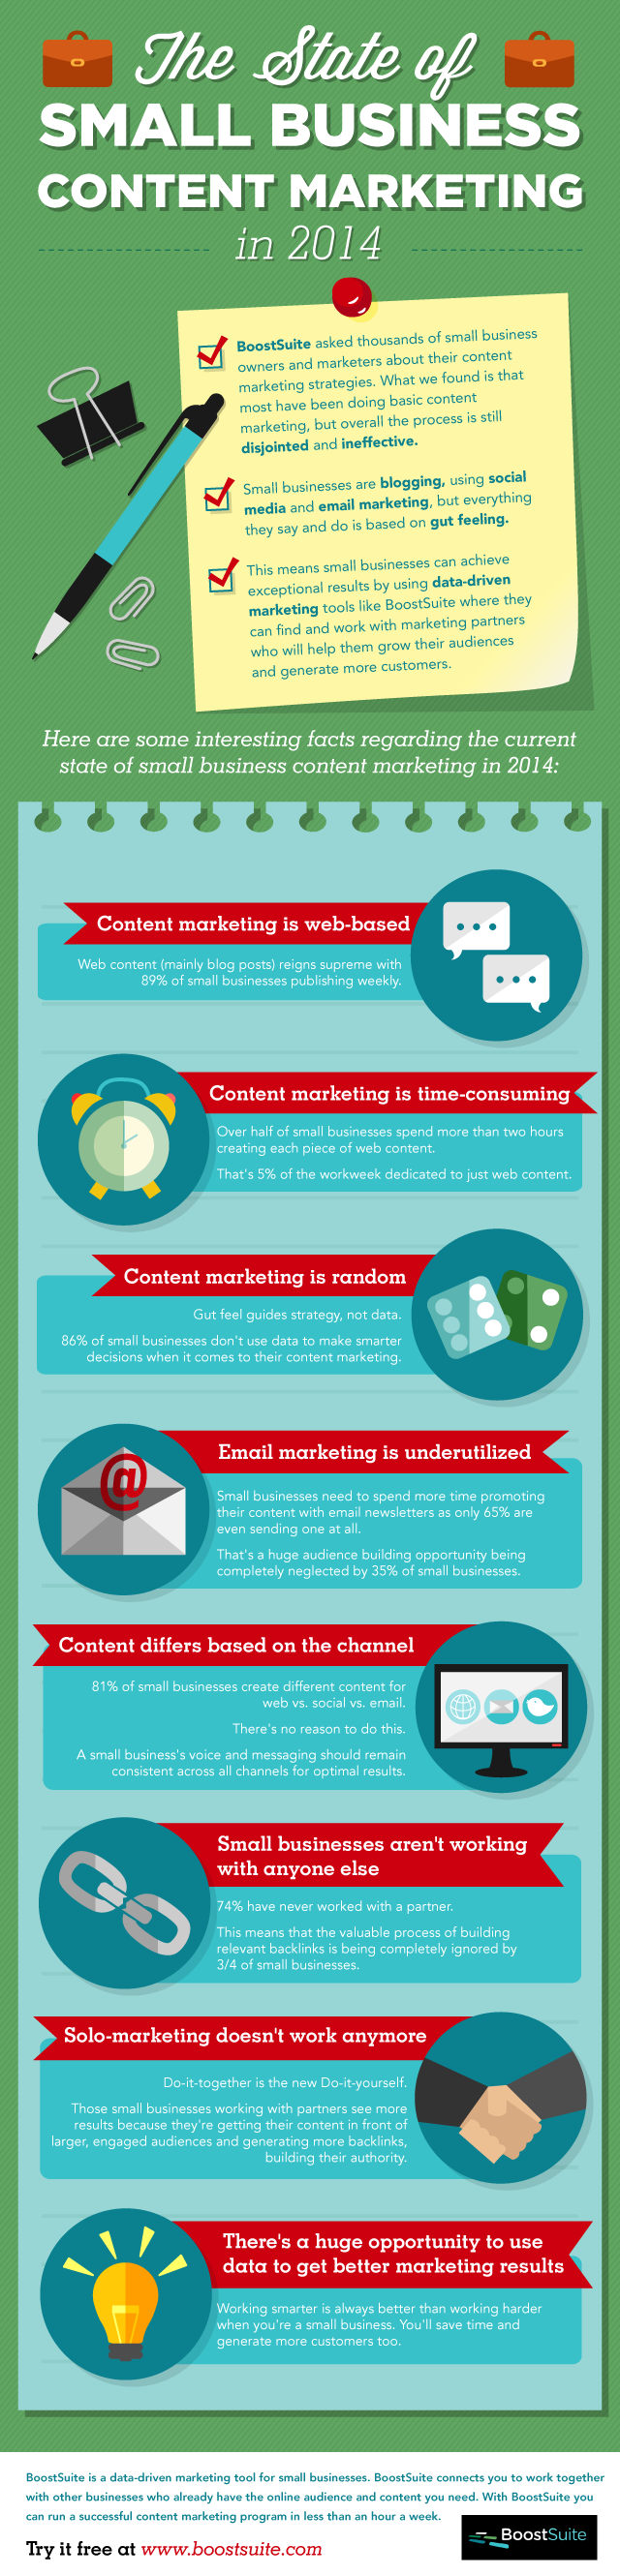 The State of Small Business Content Marketing 2014